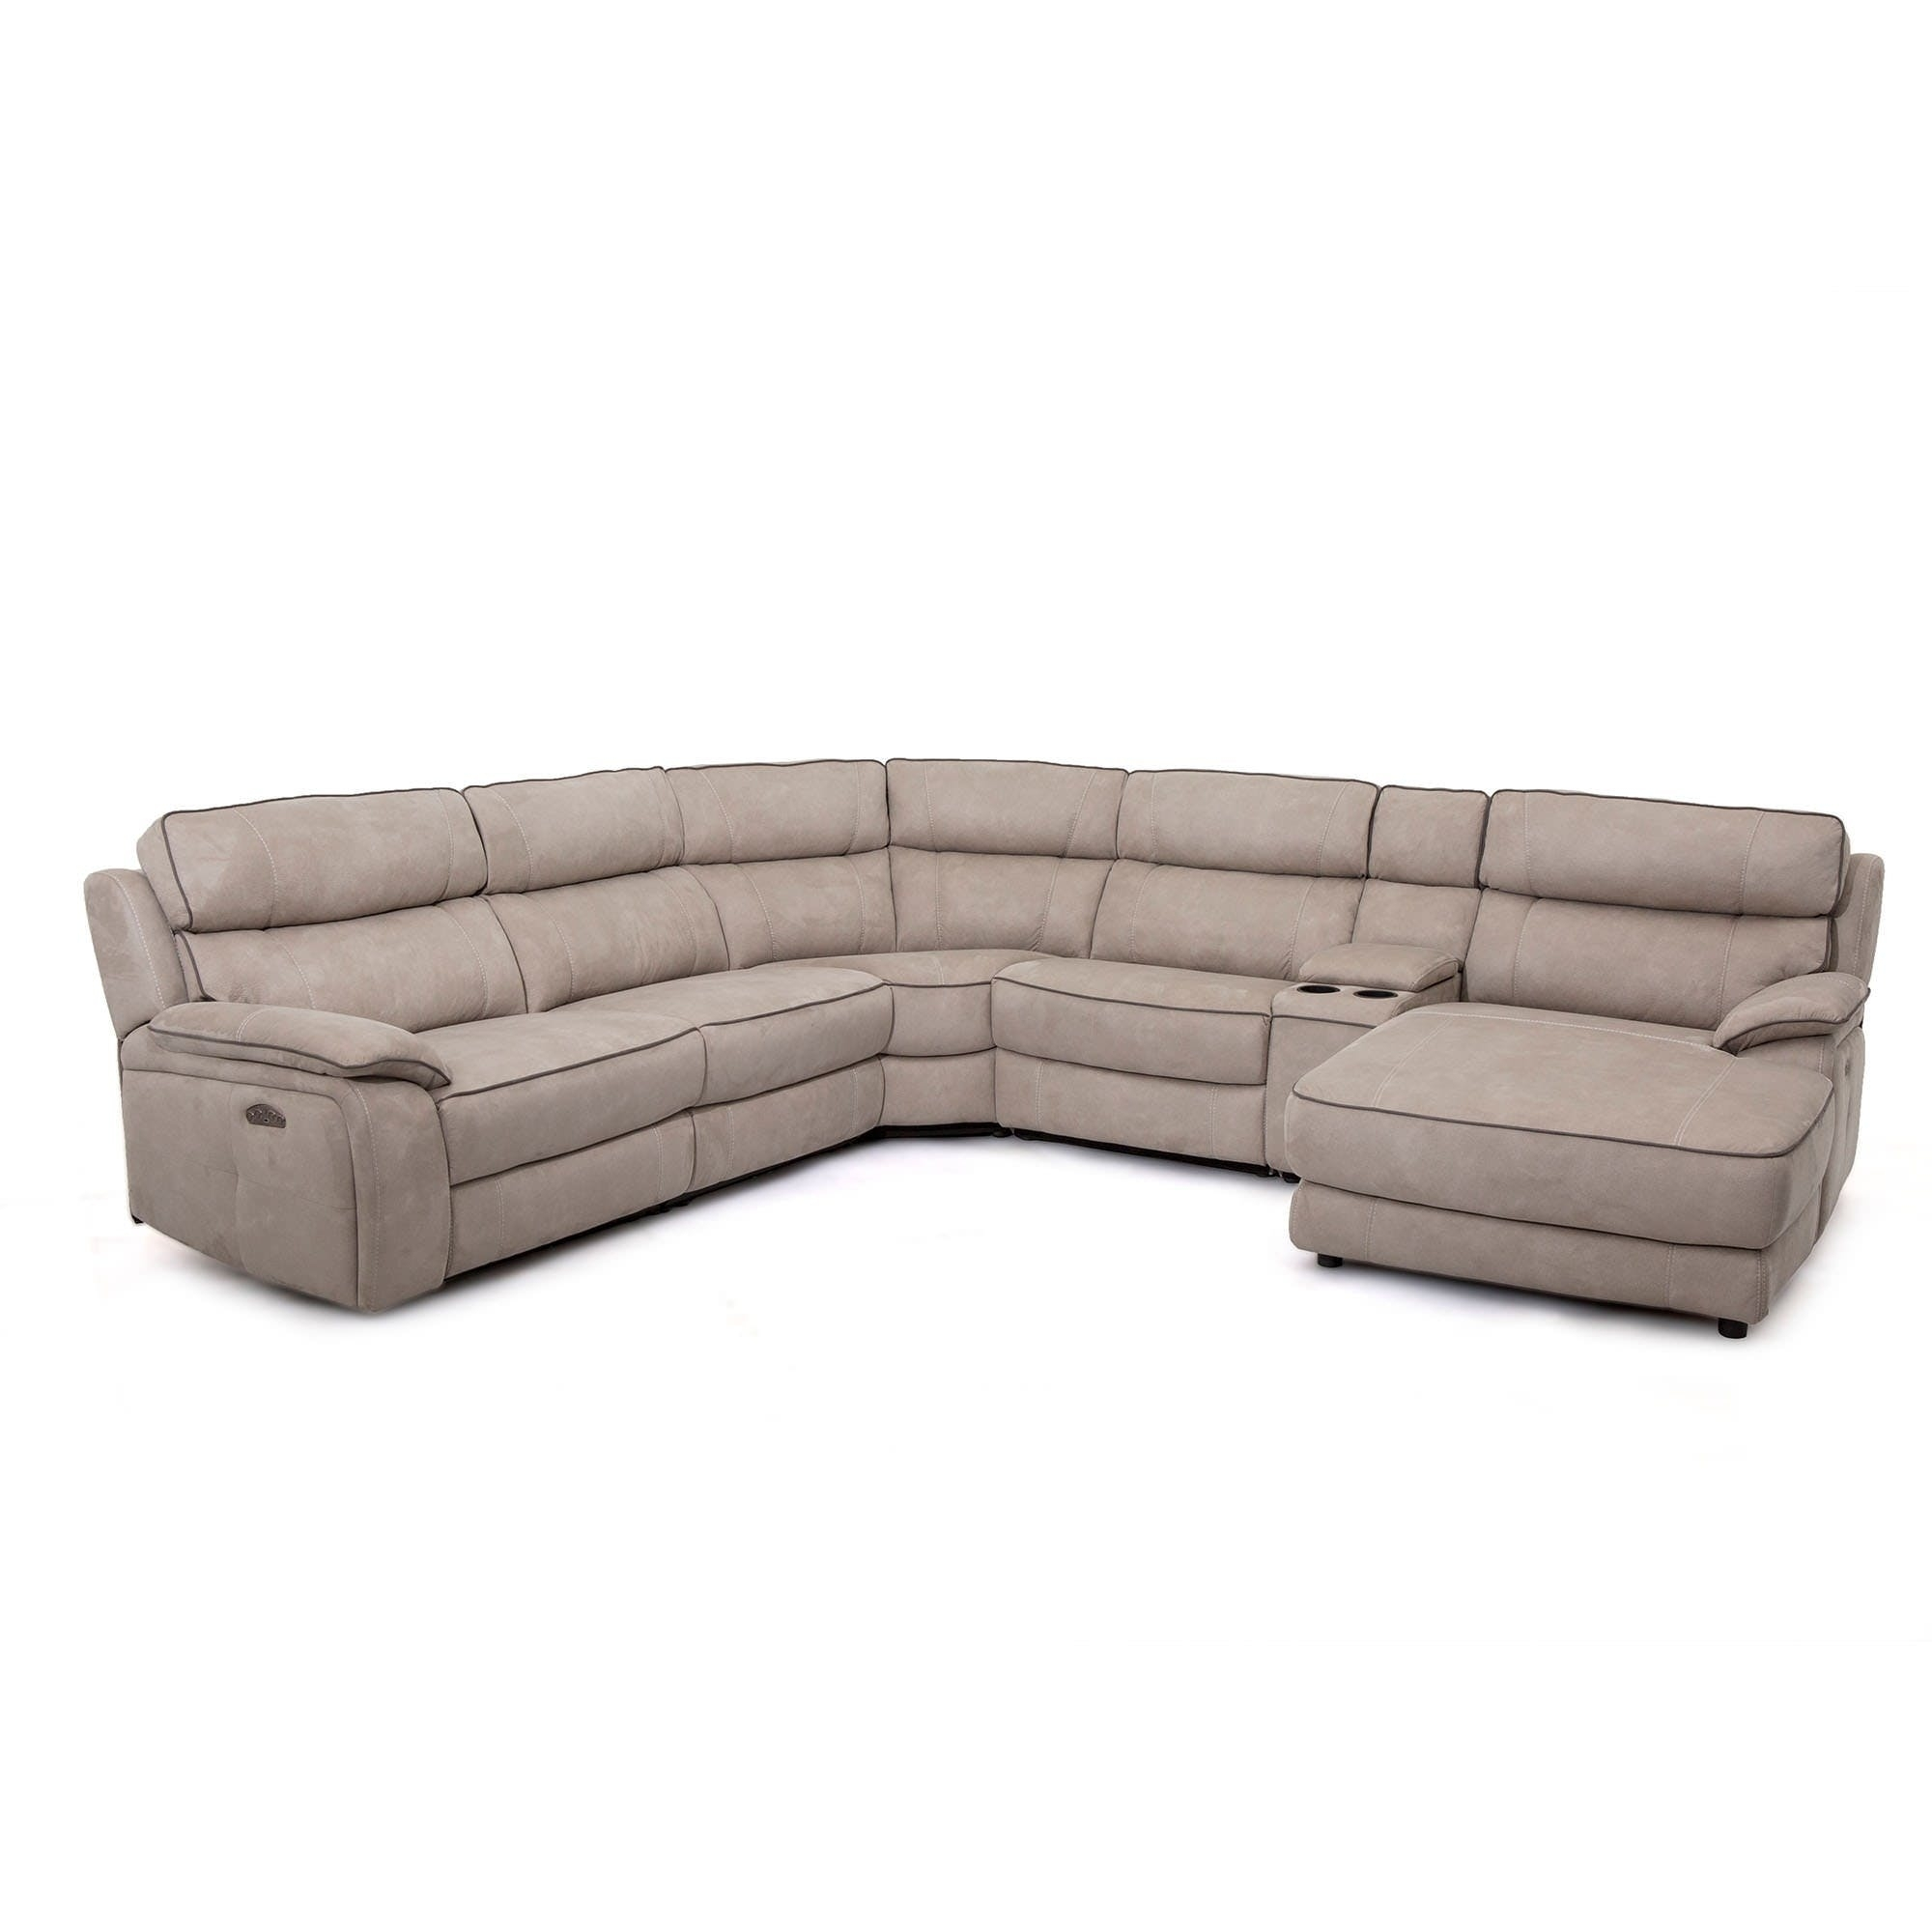 Silver Grey 6 Piece Power Reclining Sectional With Power Headrest With Kristen Silver Grey 6 Piece Power Reclining Sectionals (View 4 of 25)